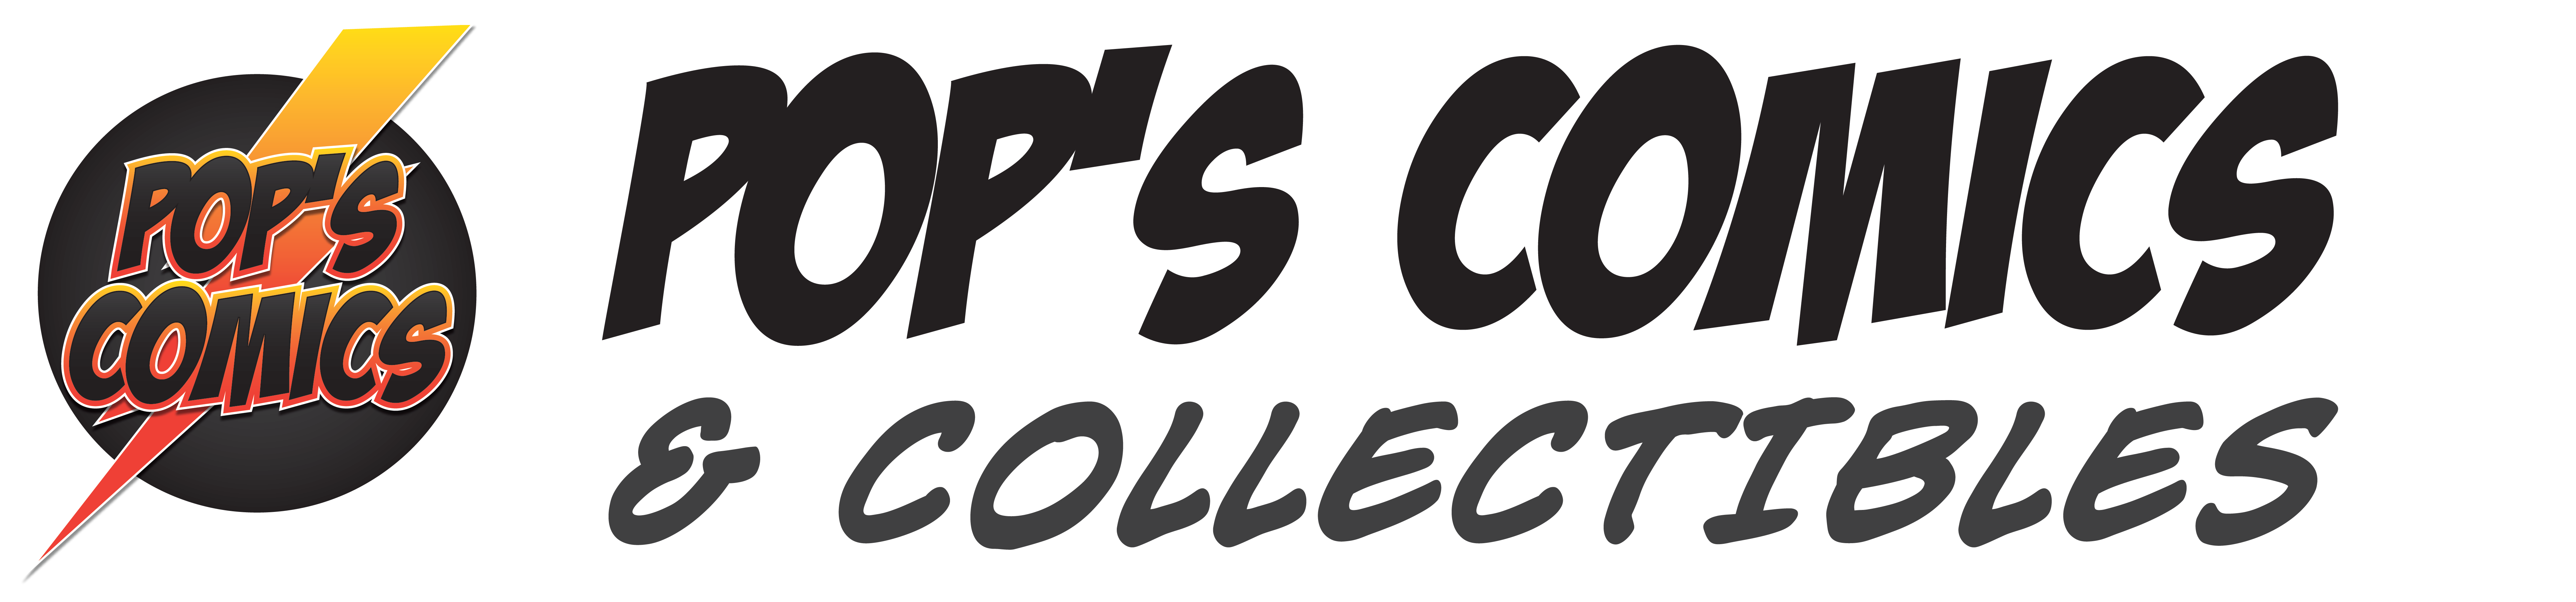 Pop's Comics & Collectibles